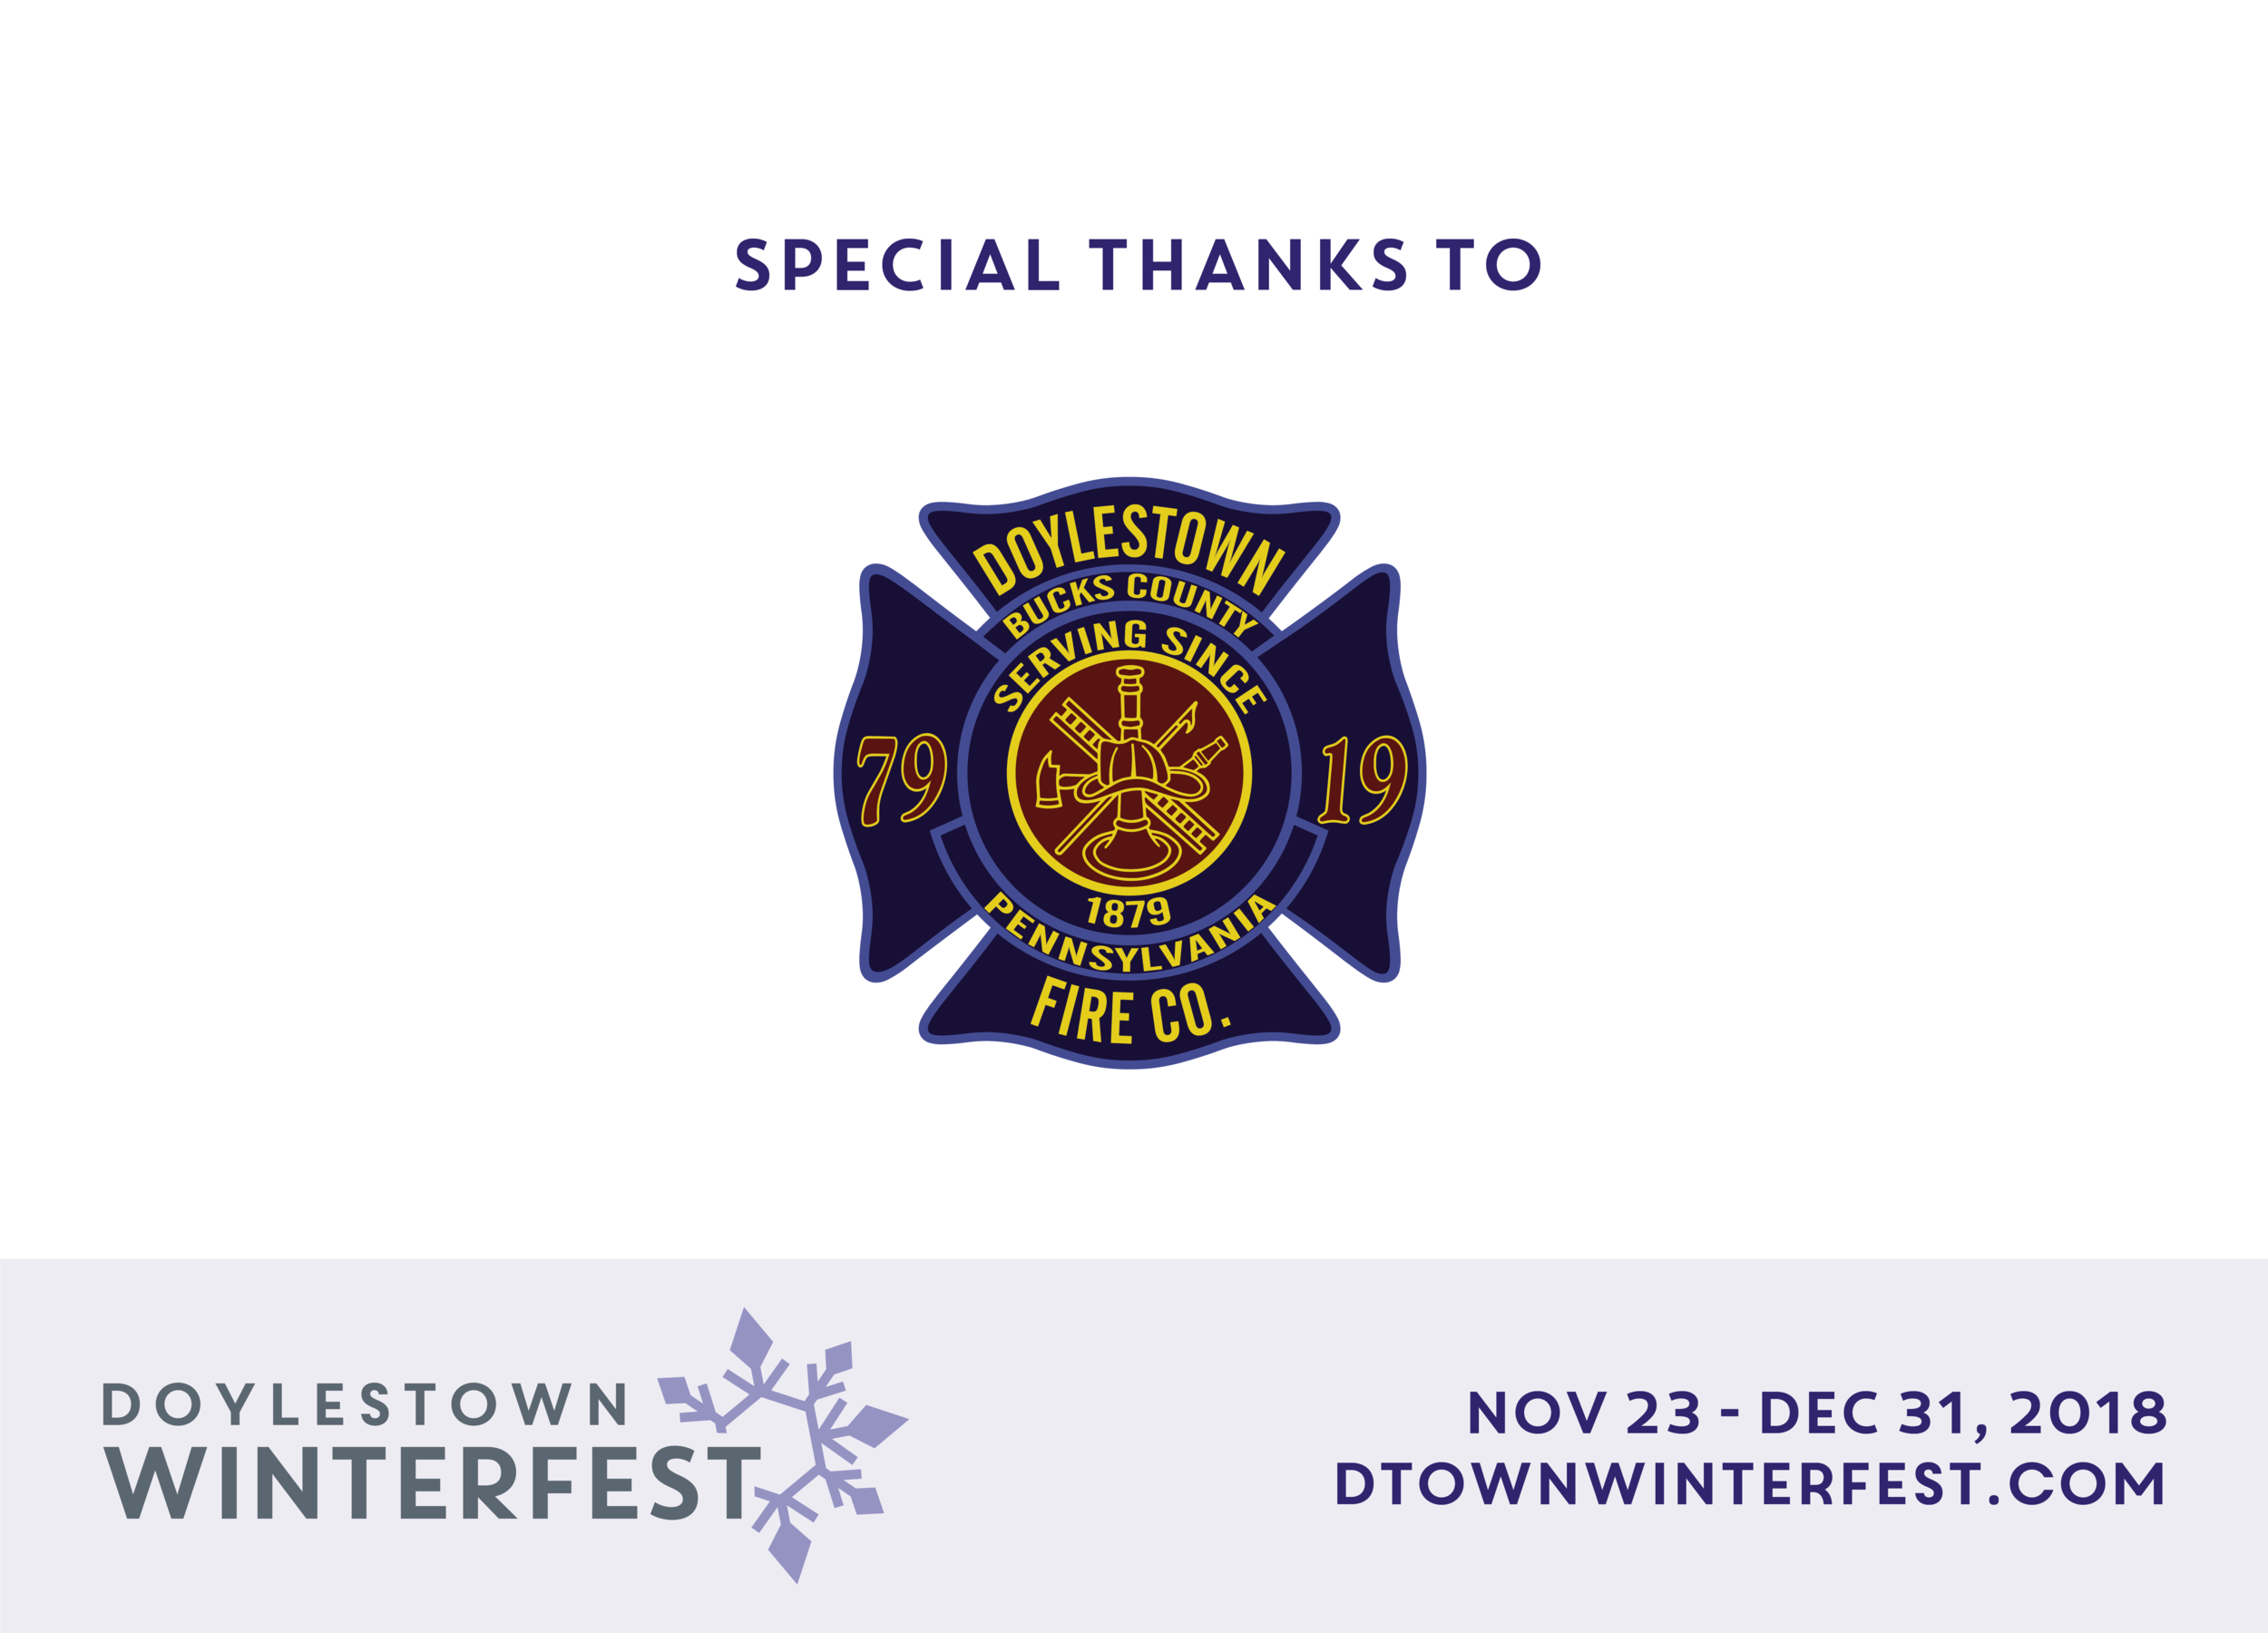 dwf-fireCo.png